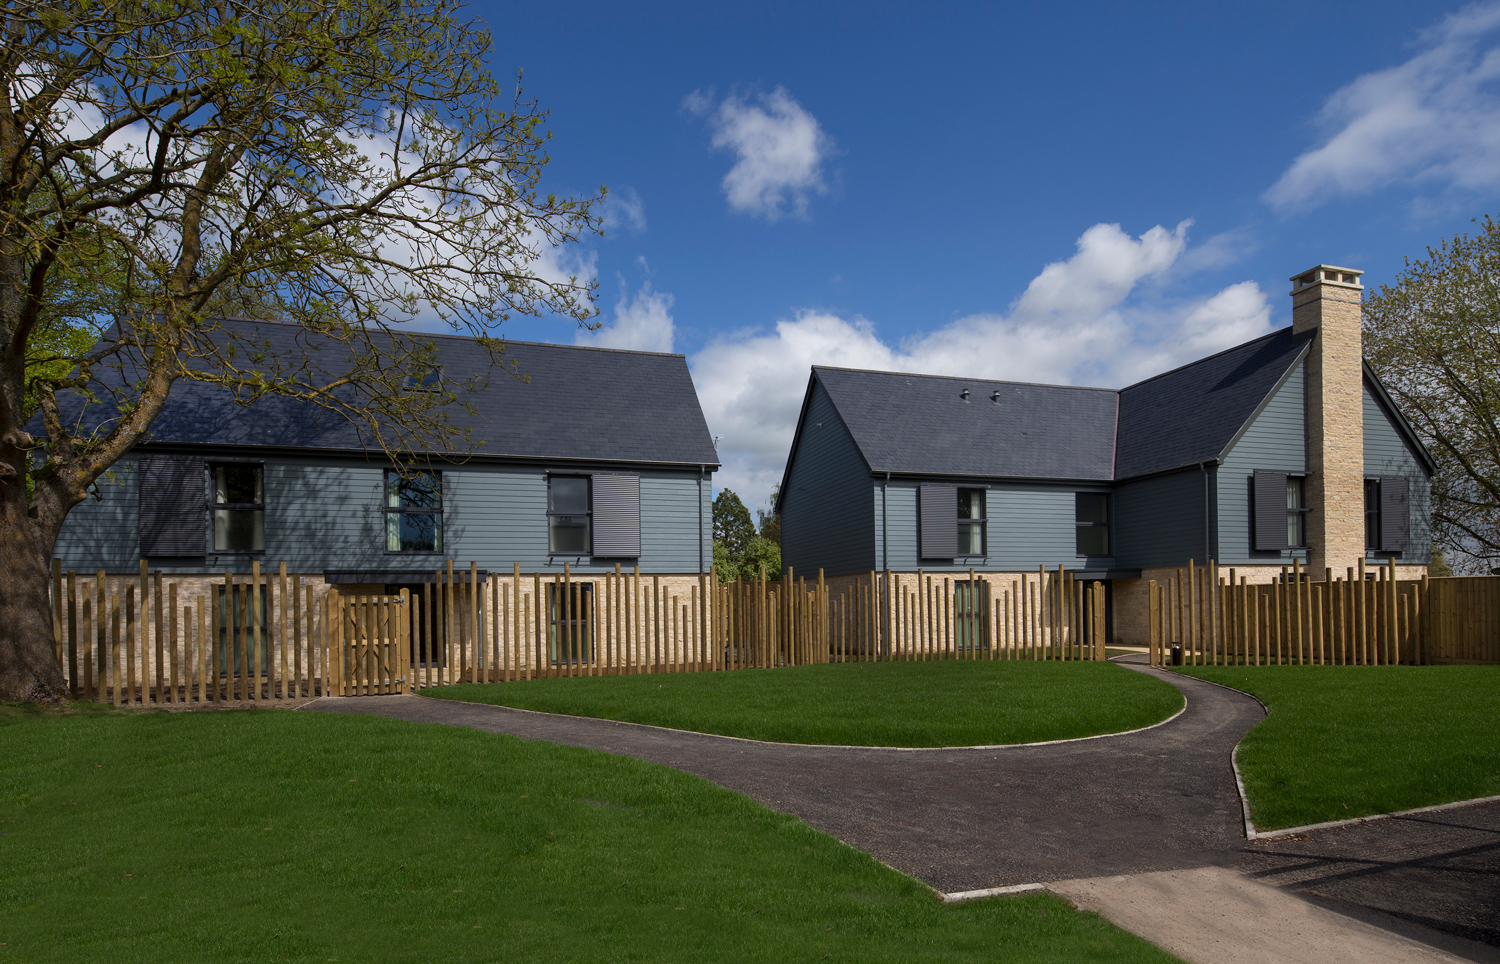 ACCOMMODATION BLOCKS FOR A SPECIAL NEEDS SCHOOL